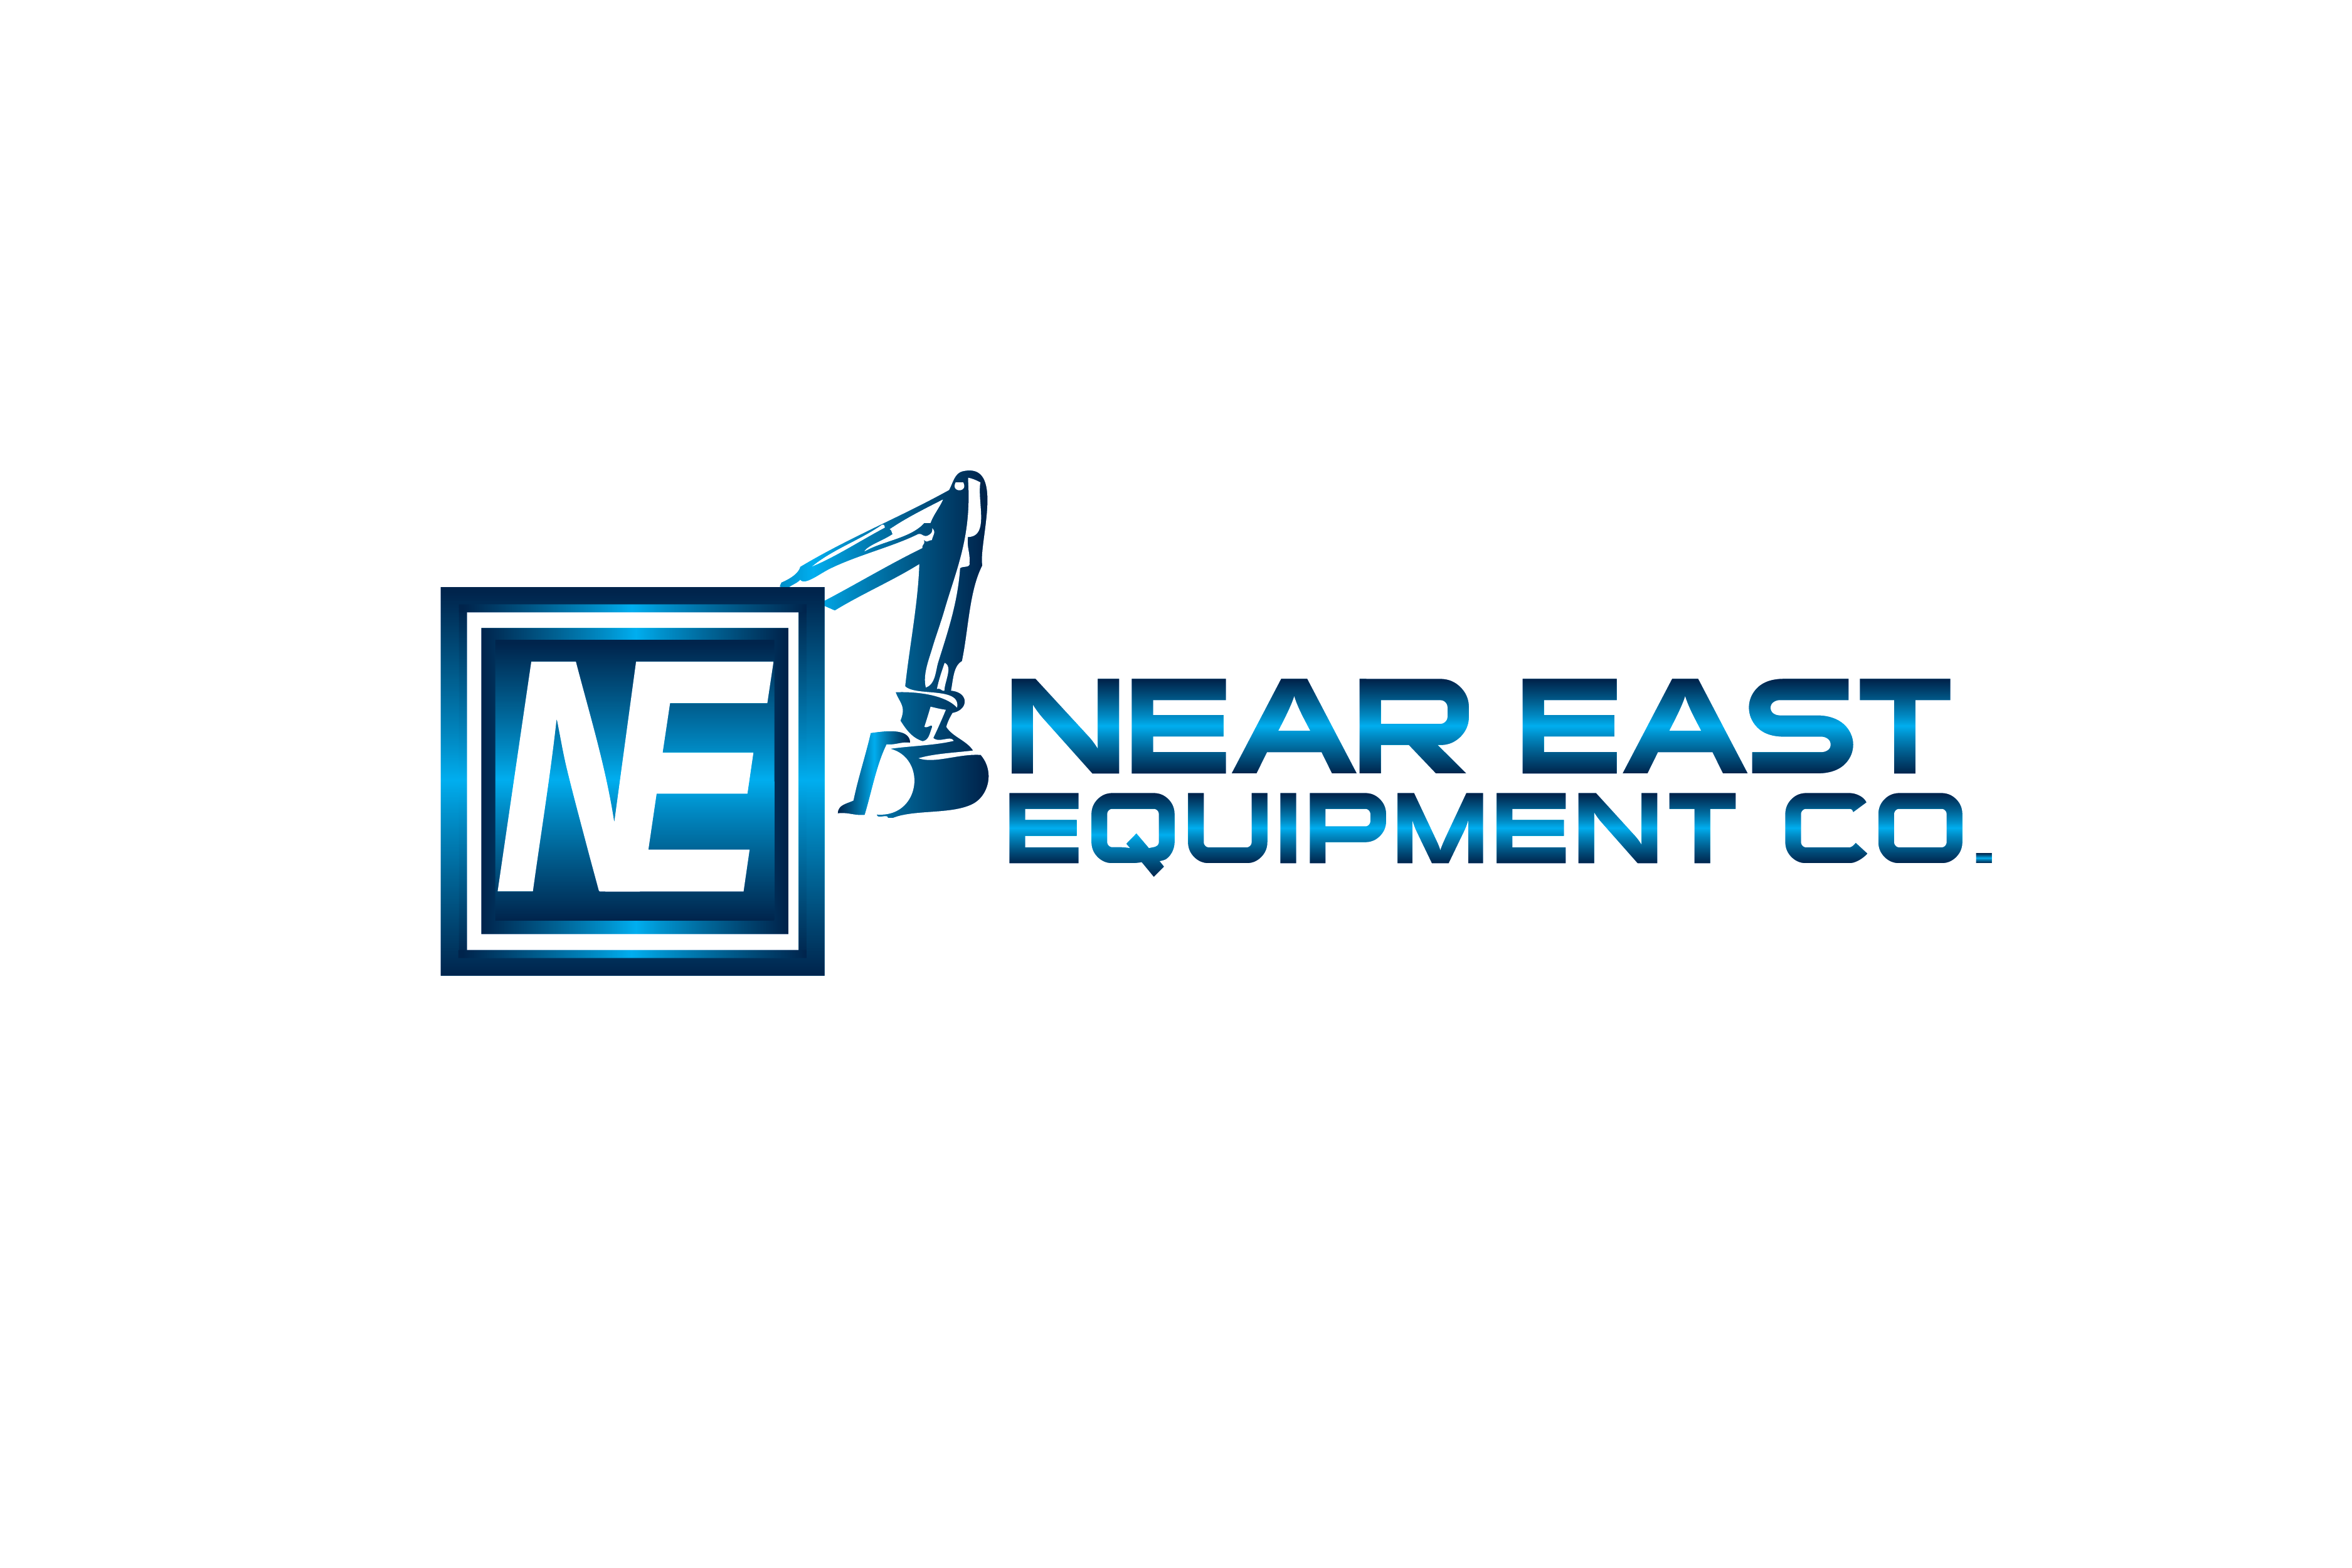 Logo Design by Private User - Entry No. 215 in the Logo Design Contest Imaginative Logo Design for The Near East Equipment Co..